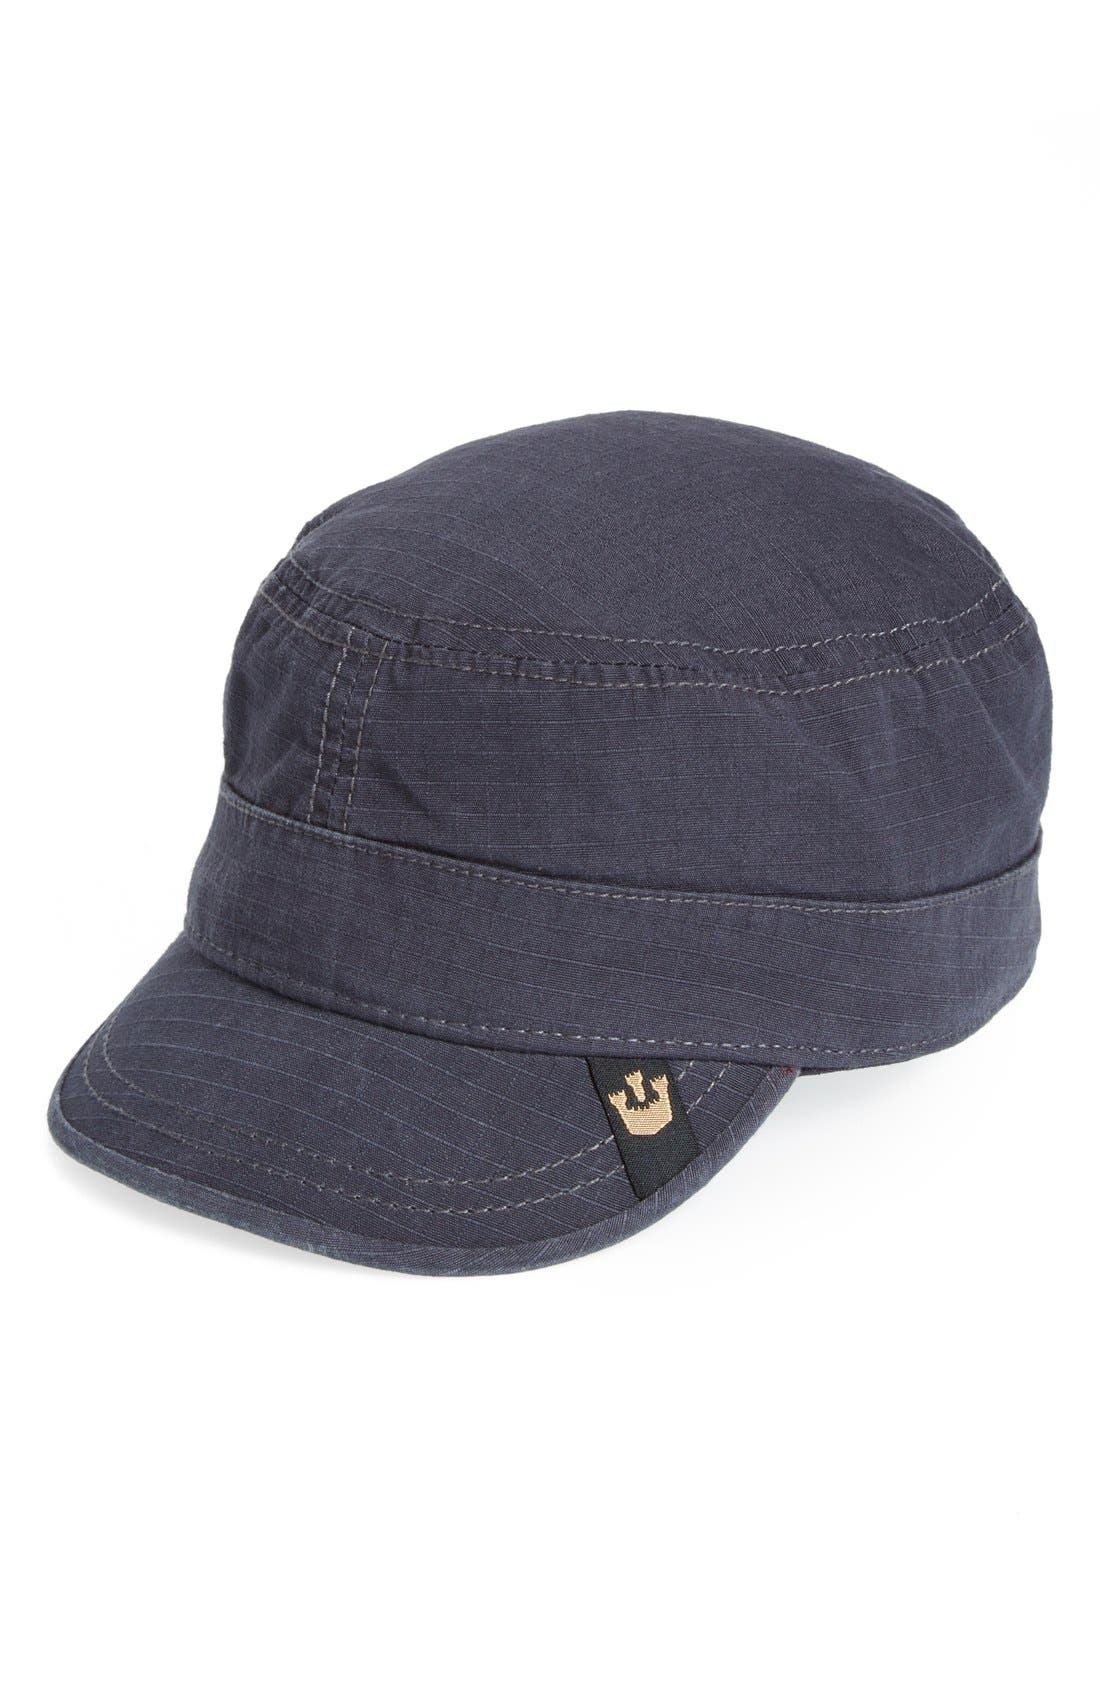 Alternate Image 1 Selected - Goorin Brothers Private Ripstop Cadet Cap